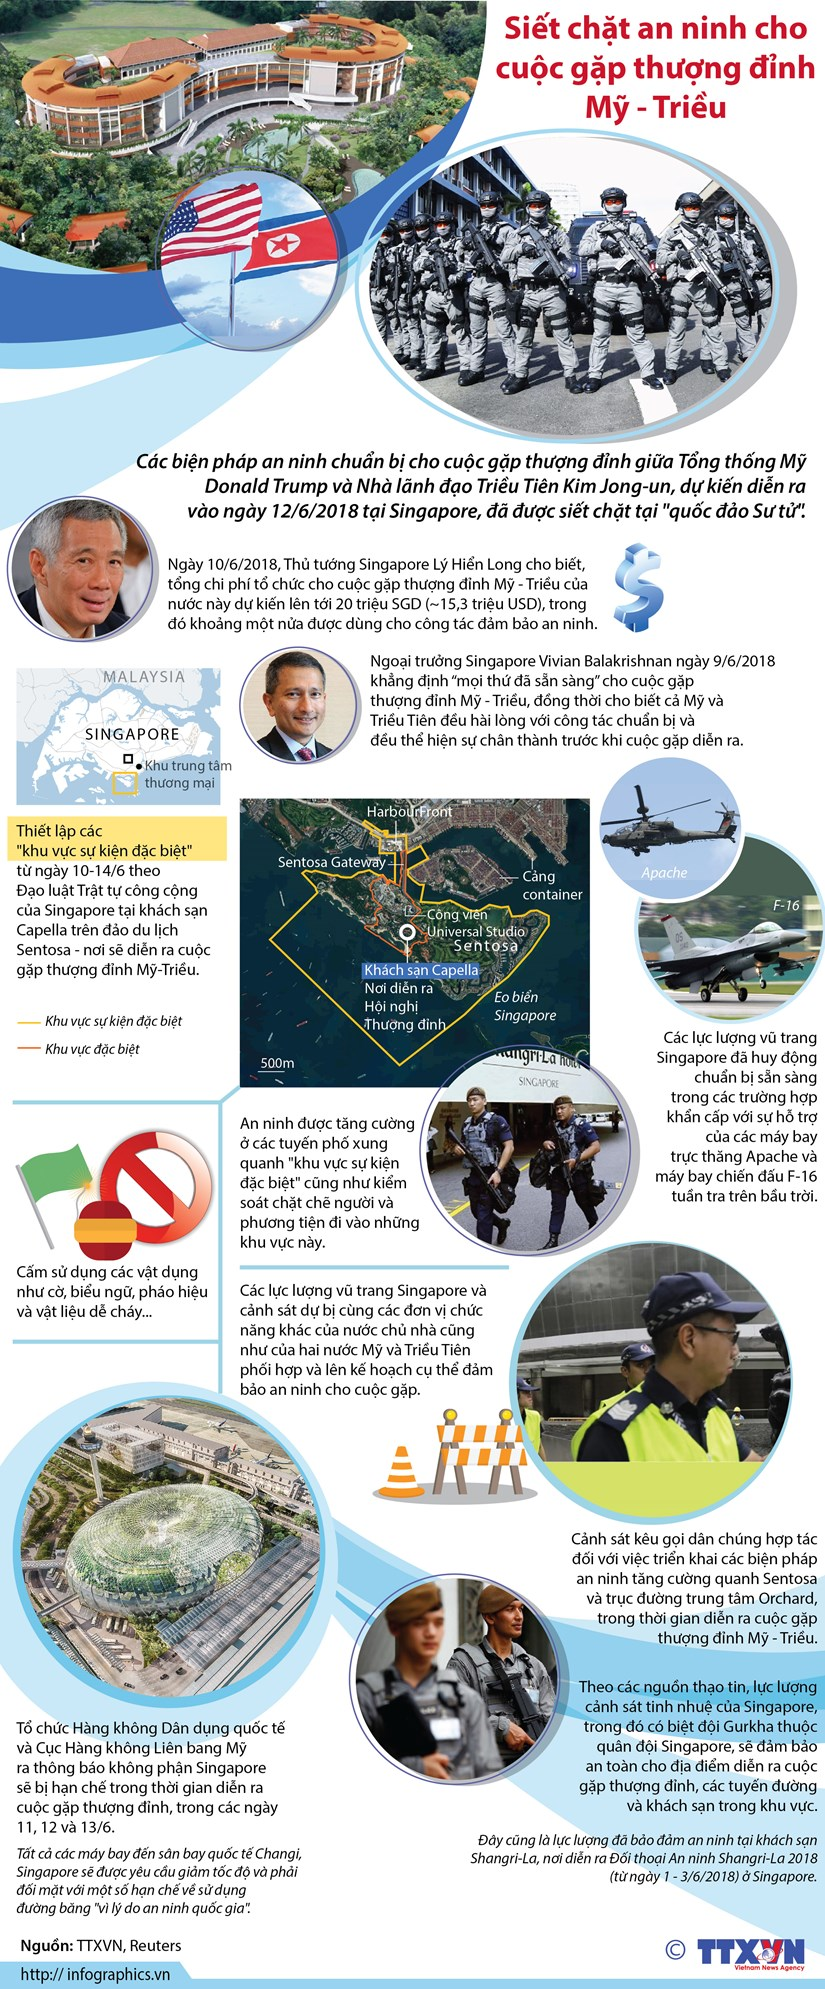 [Infographics] Siet chat an ninh cho cuoc gap thuong dinh My-Trieu hinh anh 1